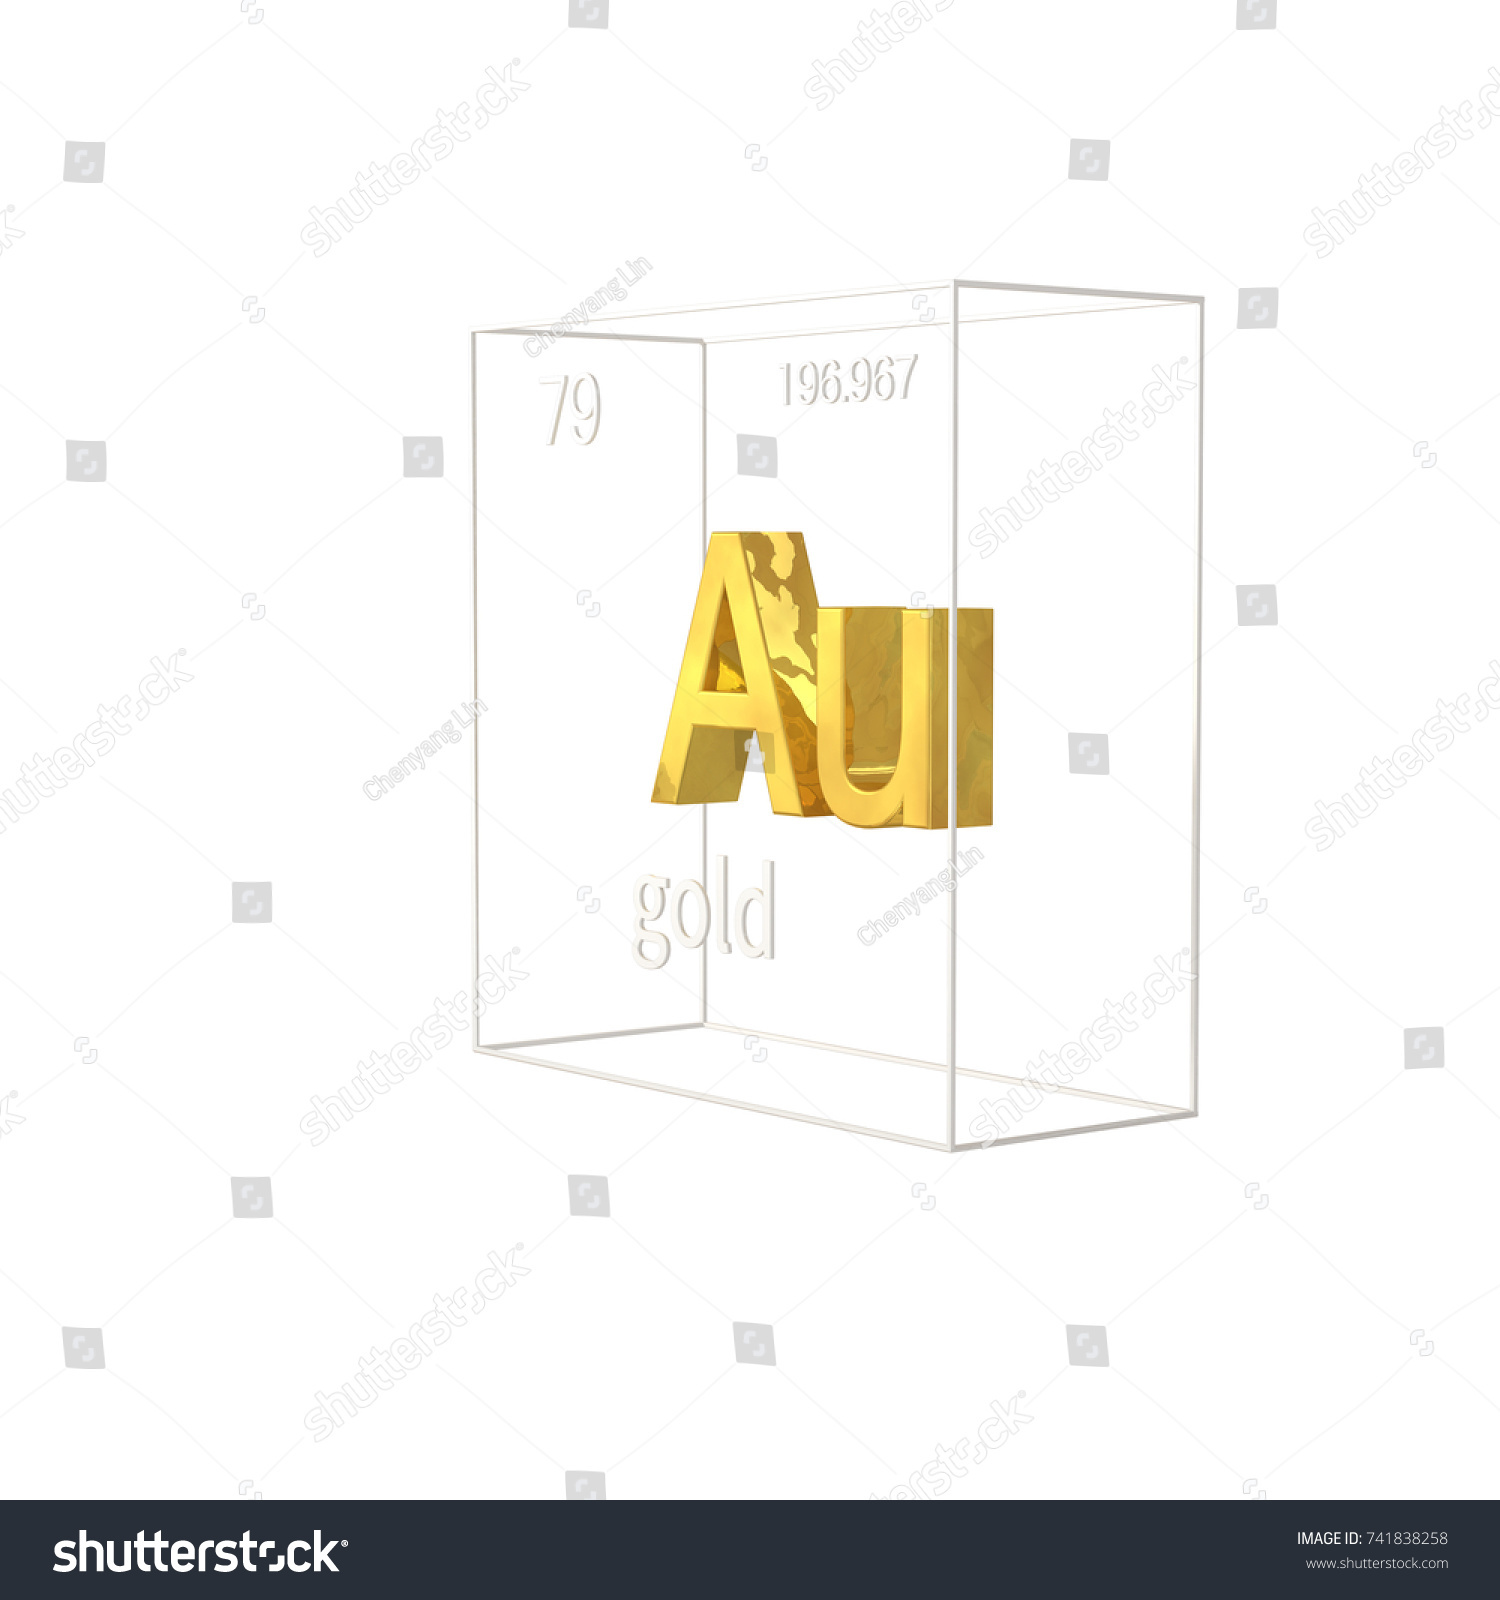 Gold chemical element atomic number atomic stock illustration gold chemical element atomic number atomic stock illustration 741838258 shutterstock urtaz Images